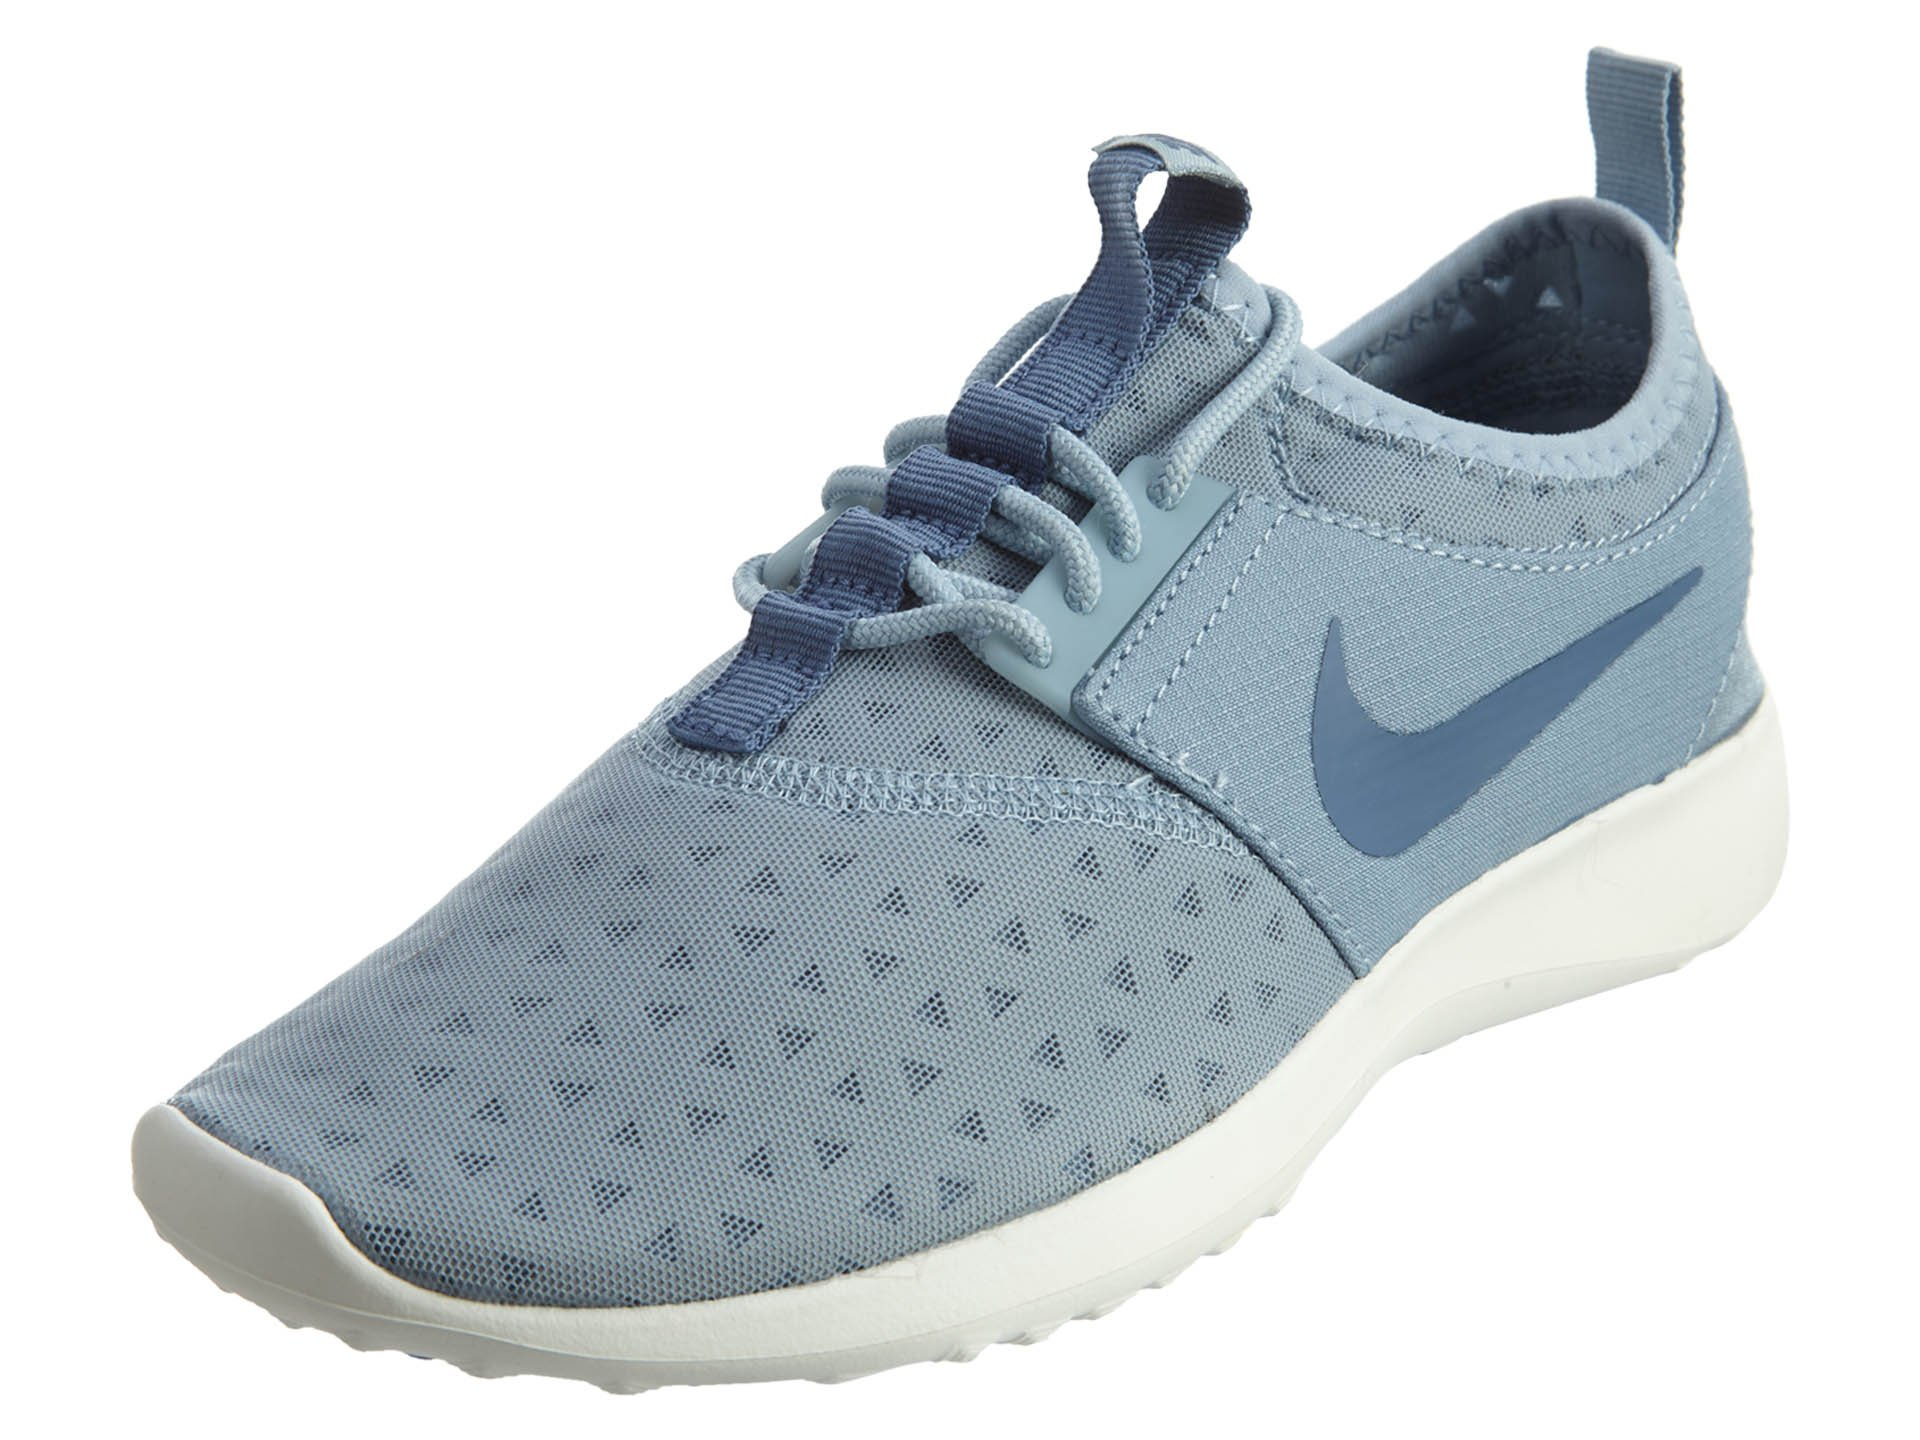 NIKE Womens Juvenate Sneaker, Blue Grey/Ocean Fog/Sail, 6.5 B US